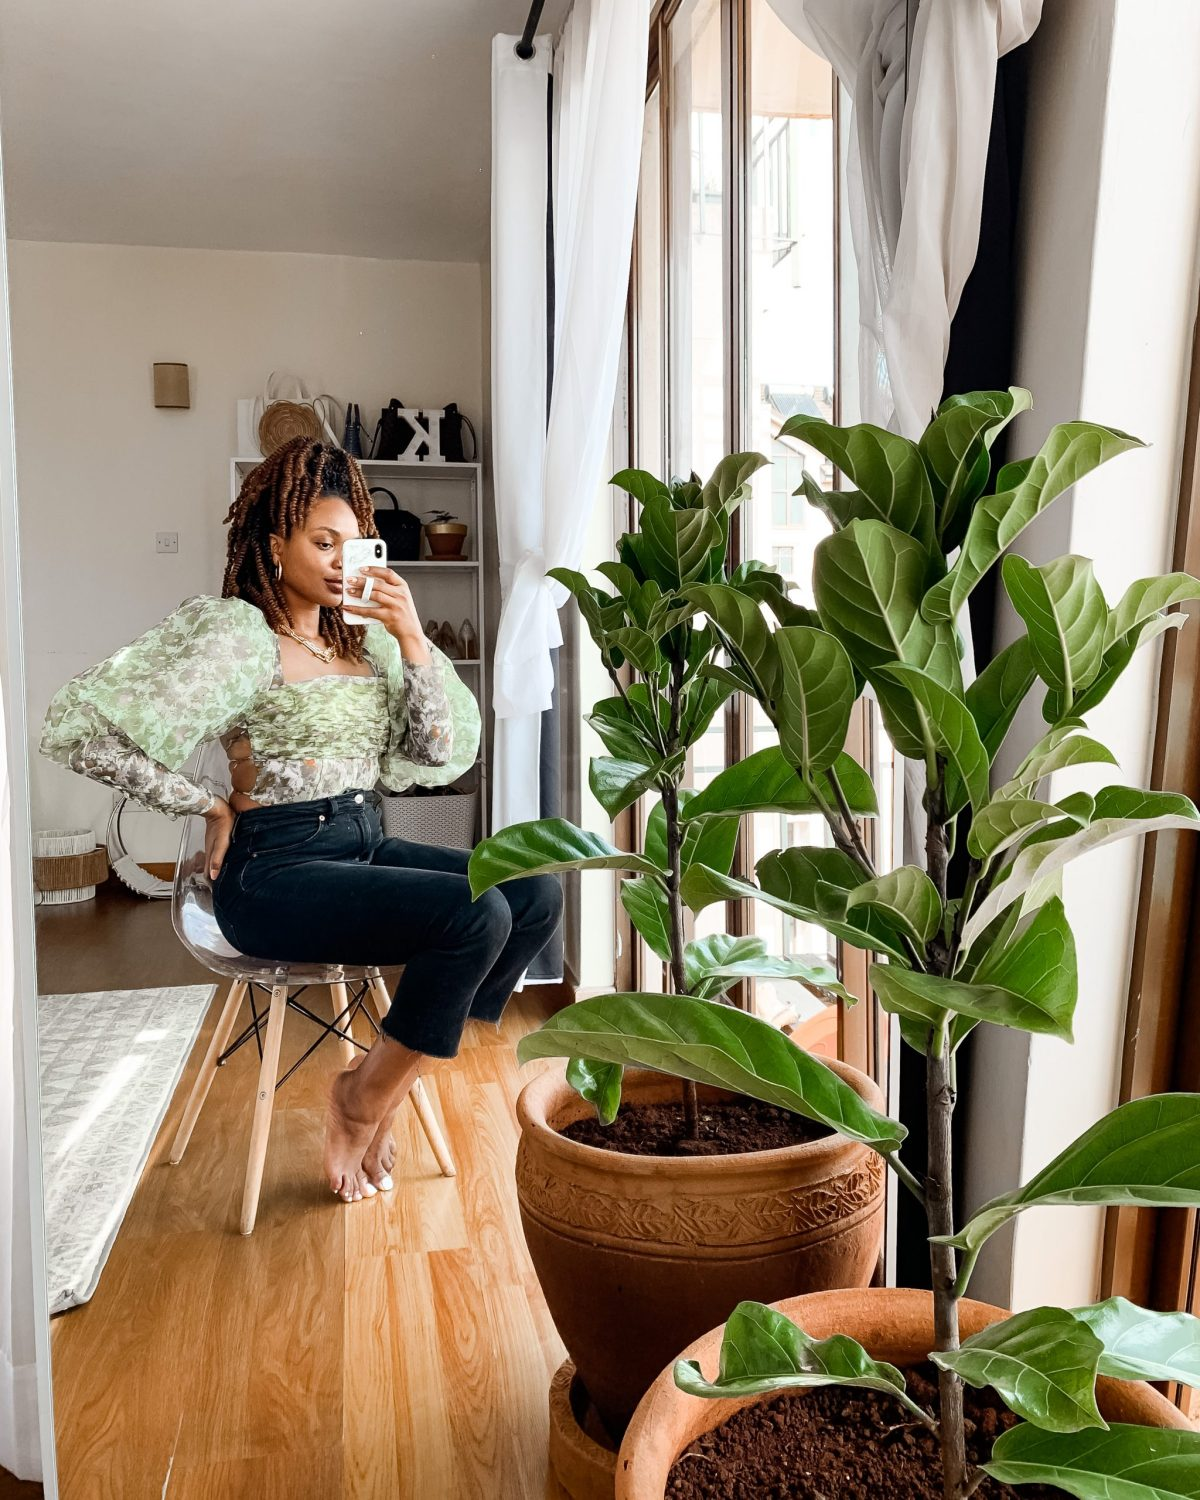 伊耶玛·科拉wearing AU Gold Top with a fiddle leaf fig plant